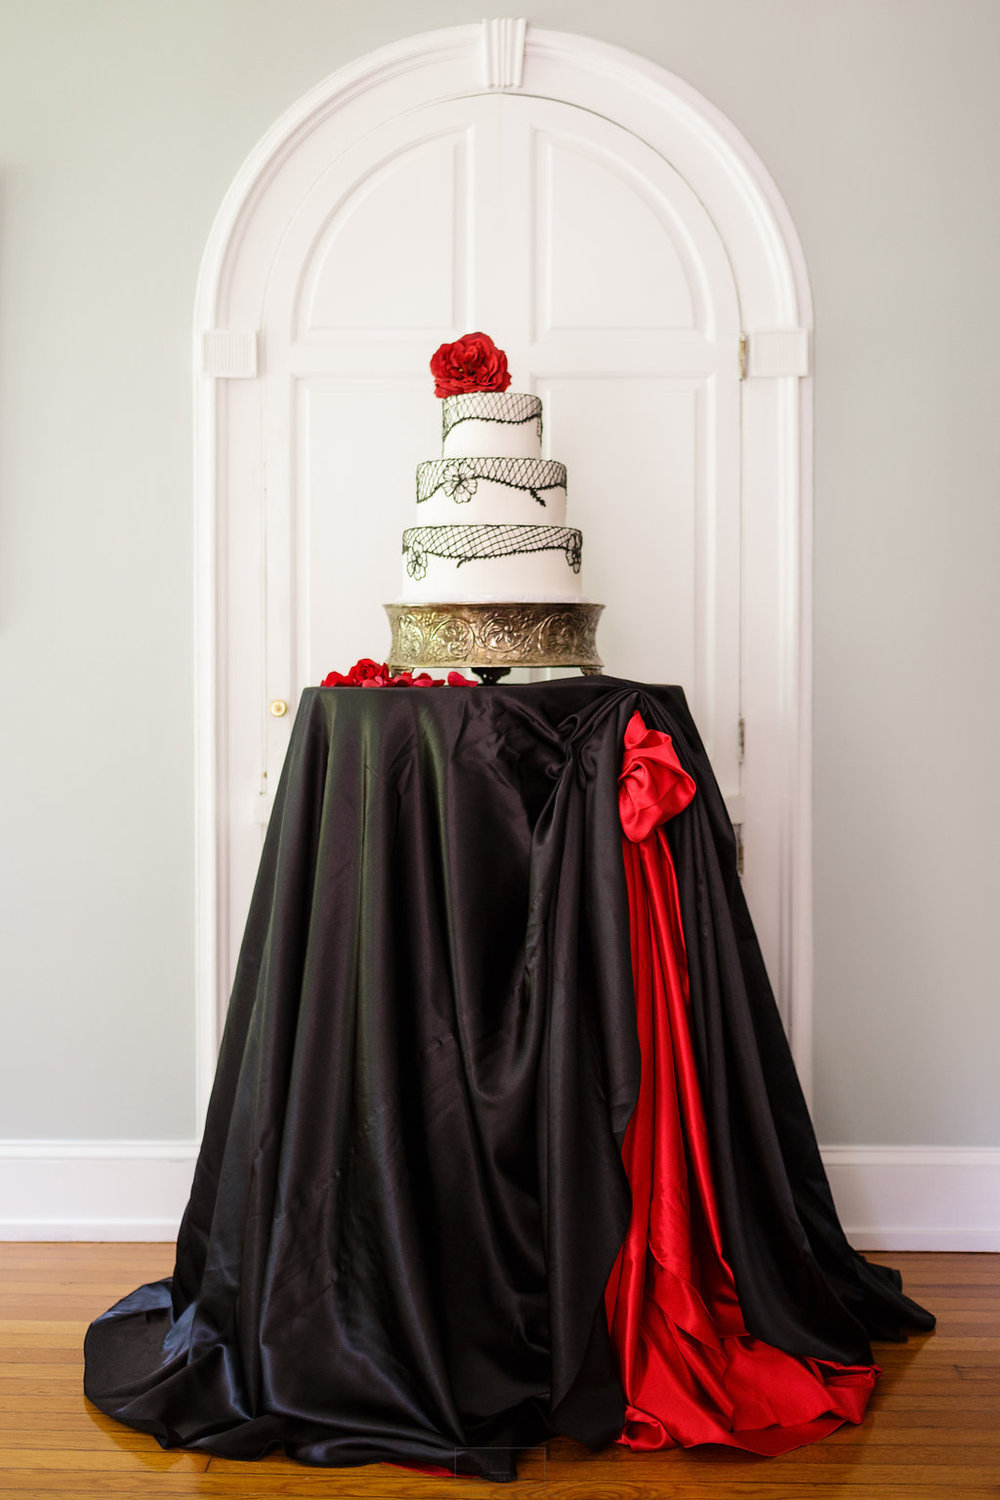 20 Flamenco Dancer Wedding Cake Inspiration Black Lace Red Rose Wedding.jpg